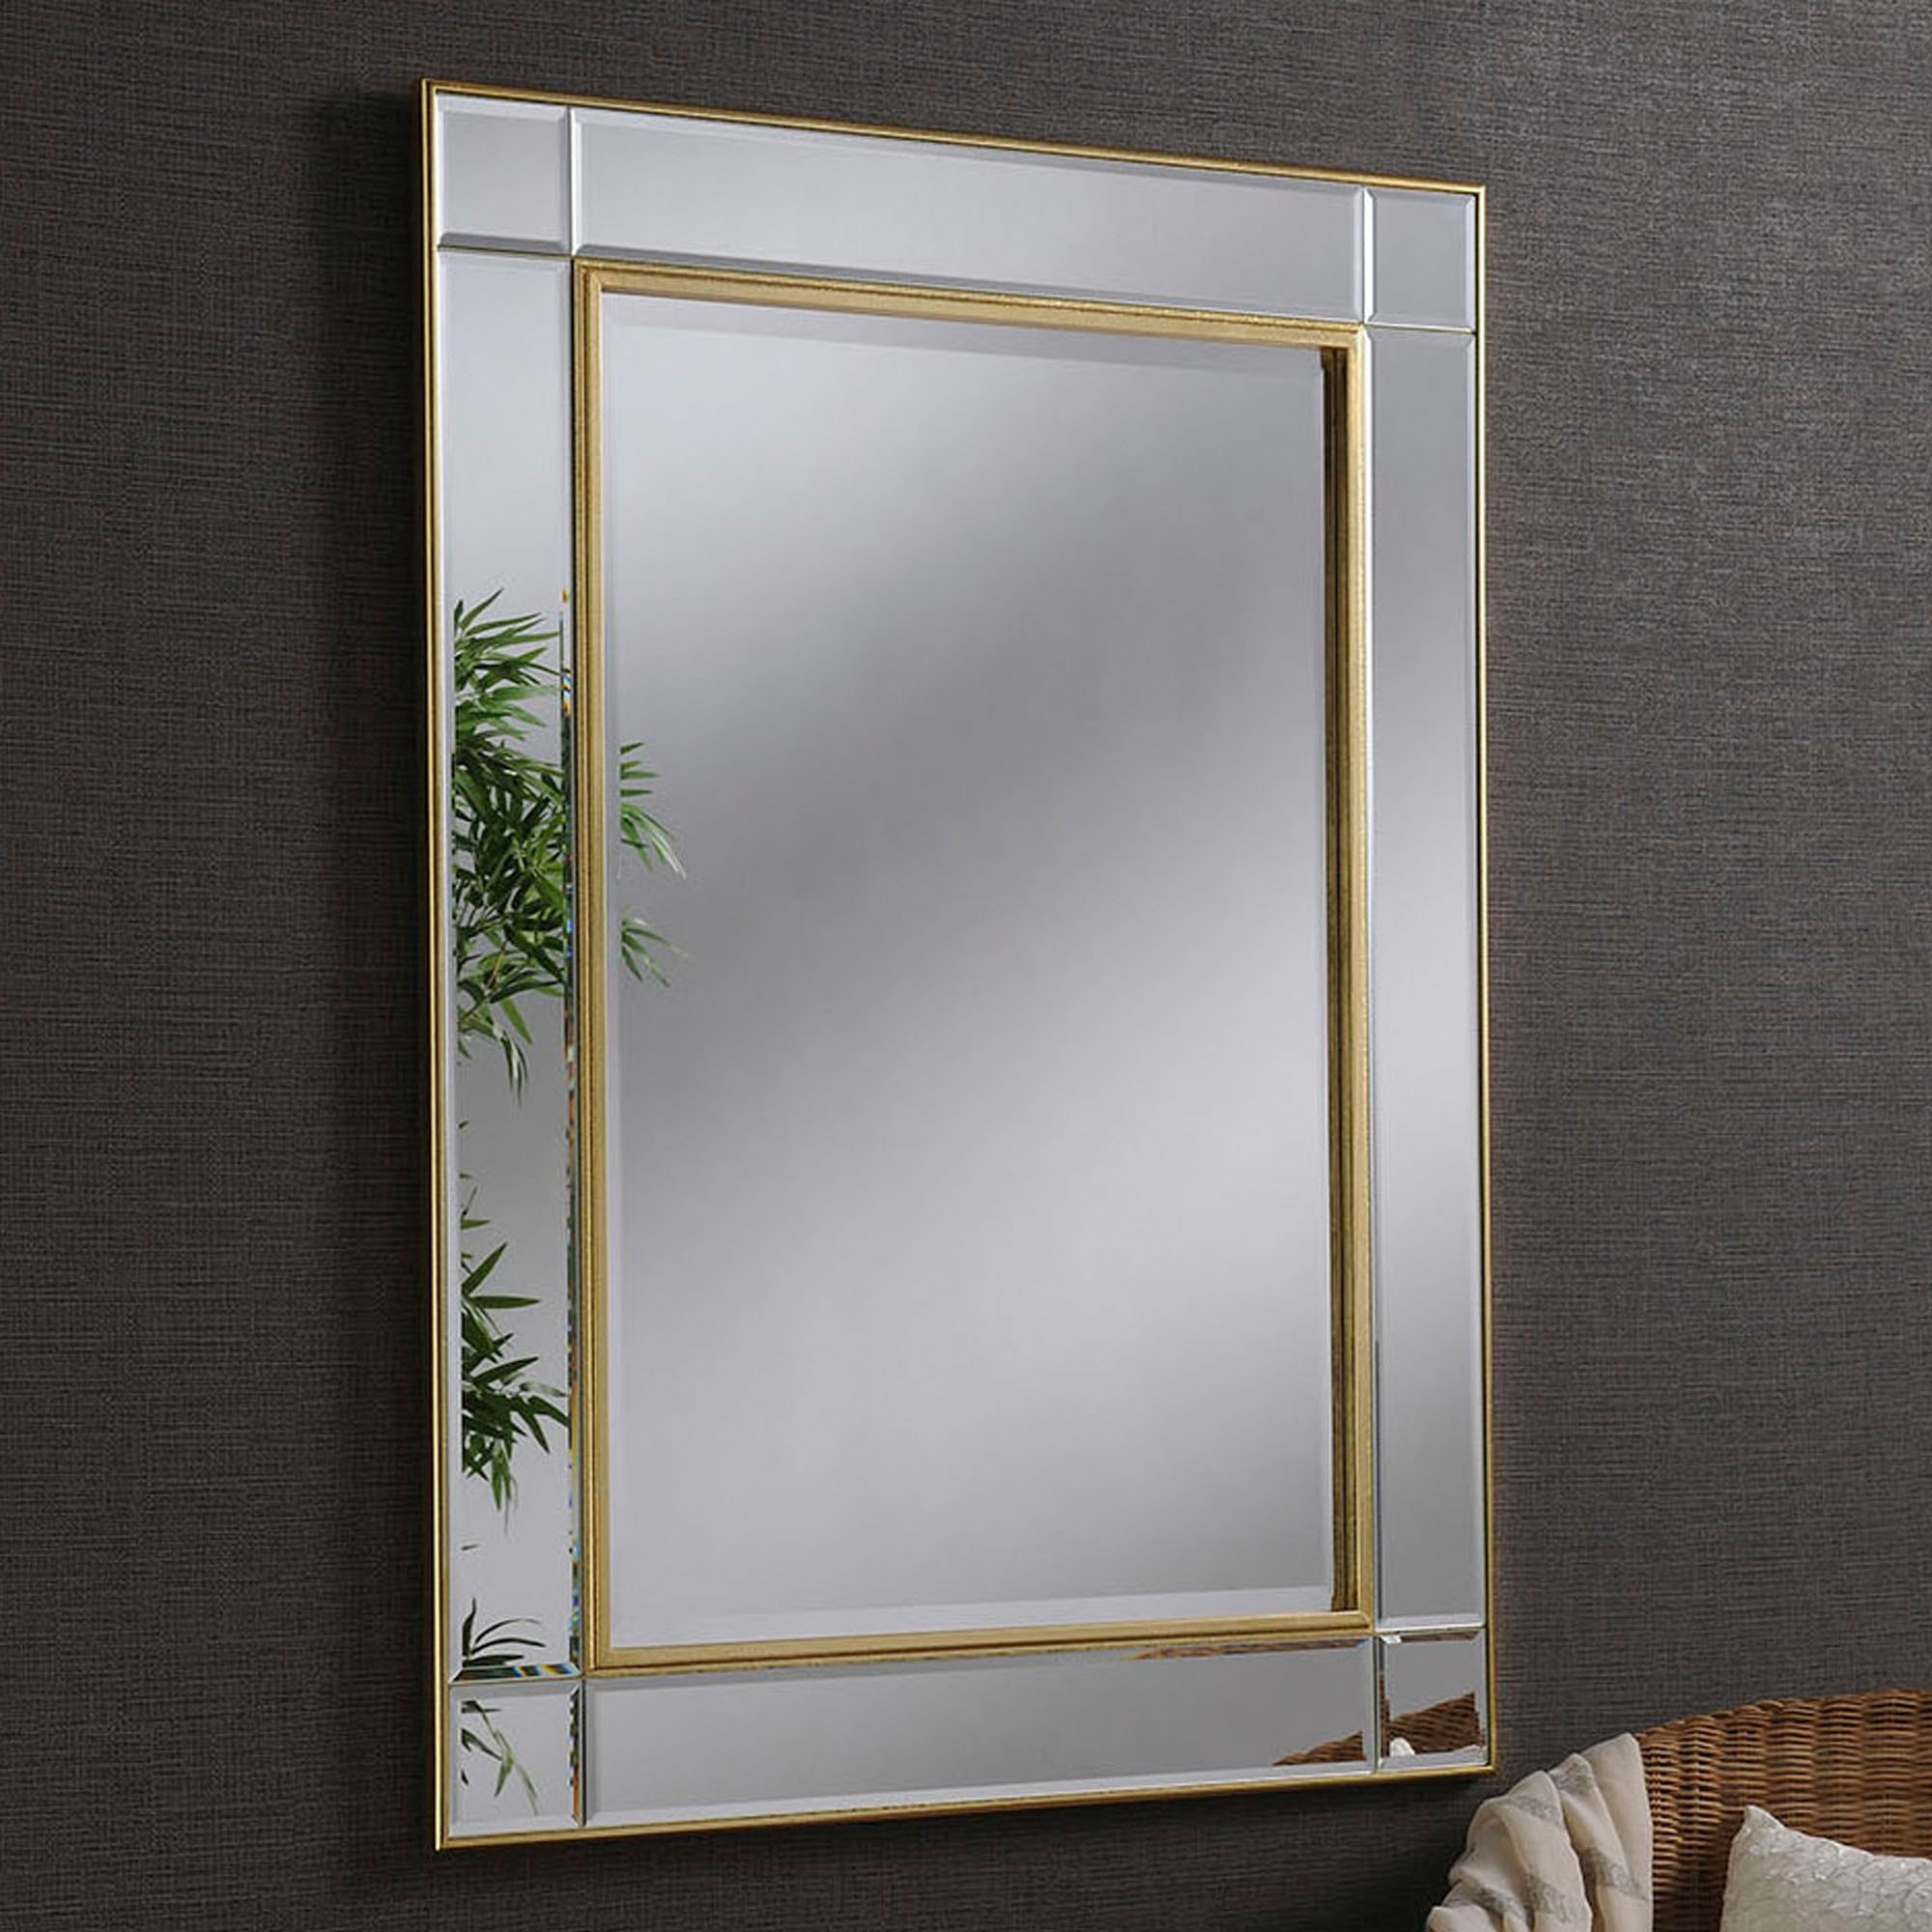 Contemporary Gold Beveled Wall Mirror in Modern & Contemporary Beveled Wall Mirrors (Image 6 of 30)